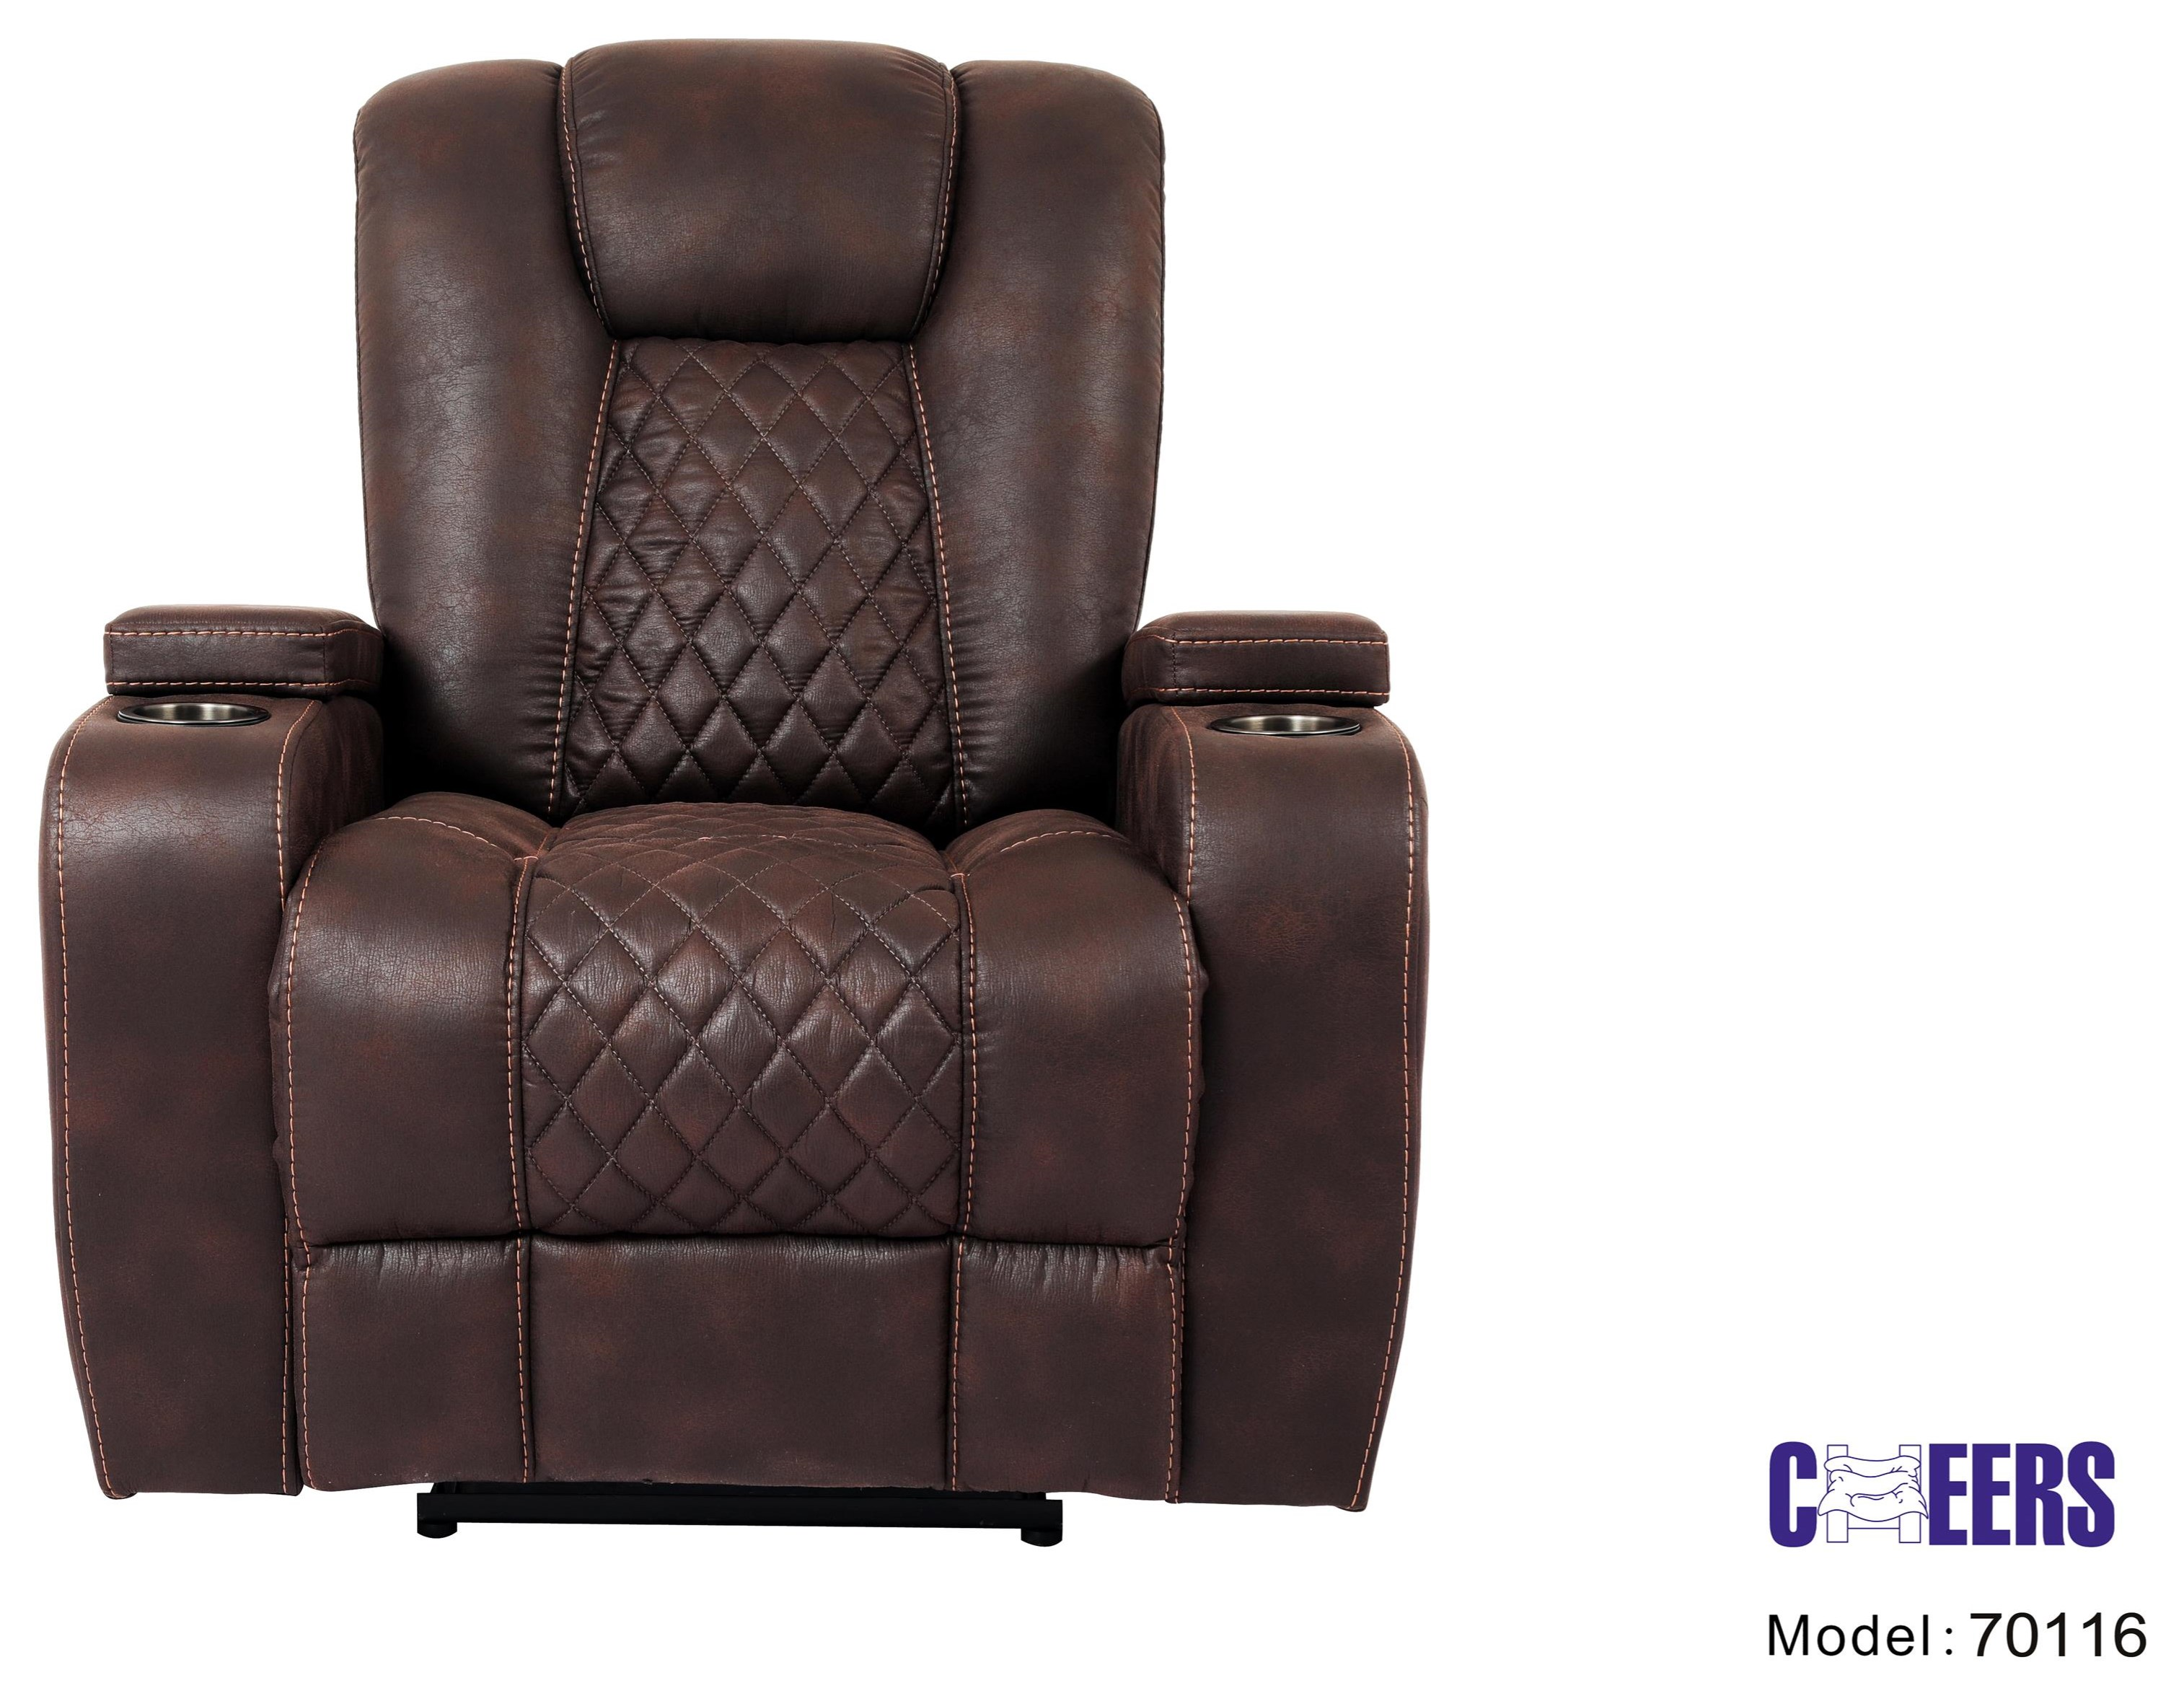 70116 Manual Transformer Recliner by Cheers at Westrich Furniture & Appliances